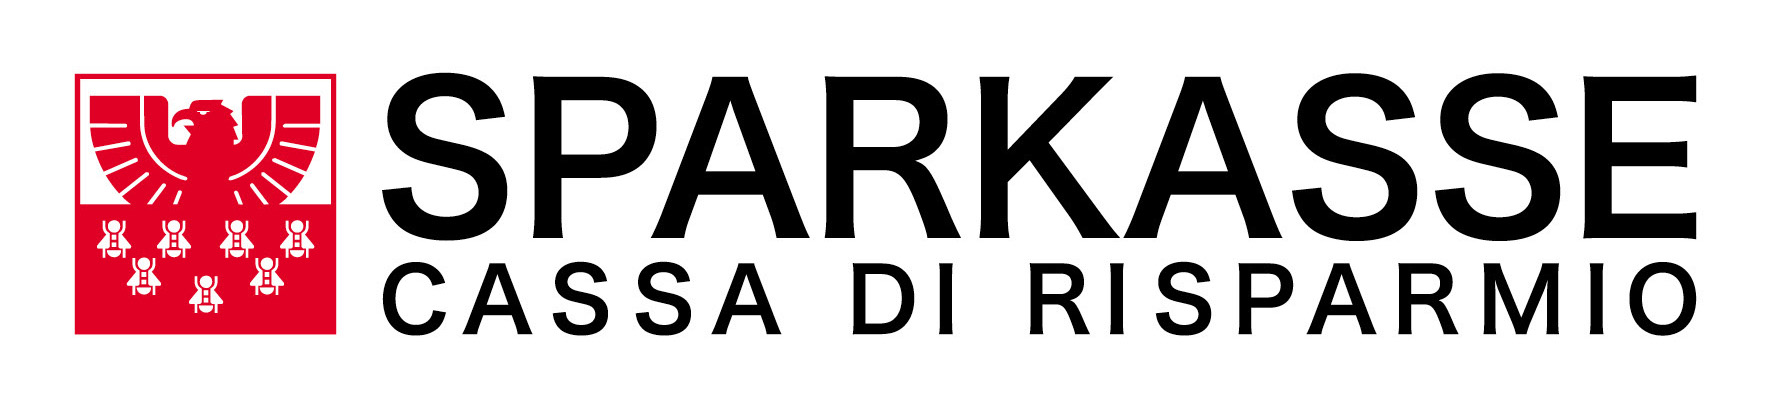 Logo Sparkasse 2013 neutral